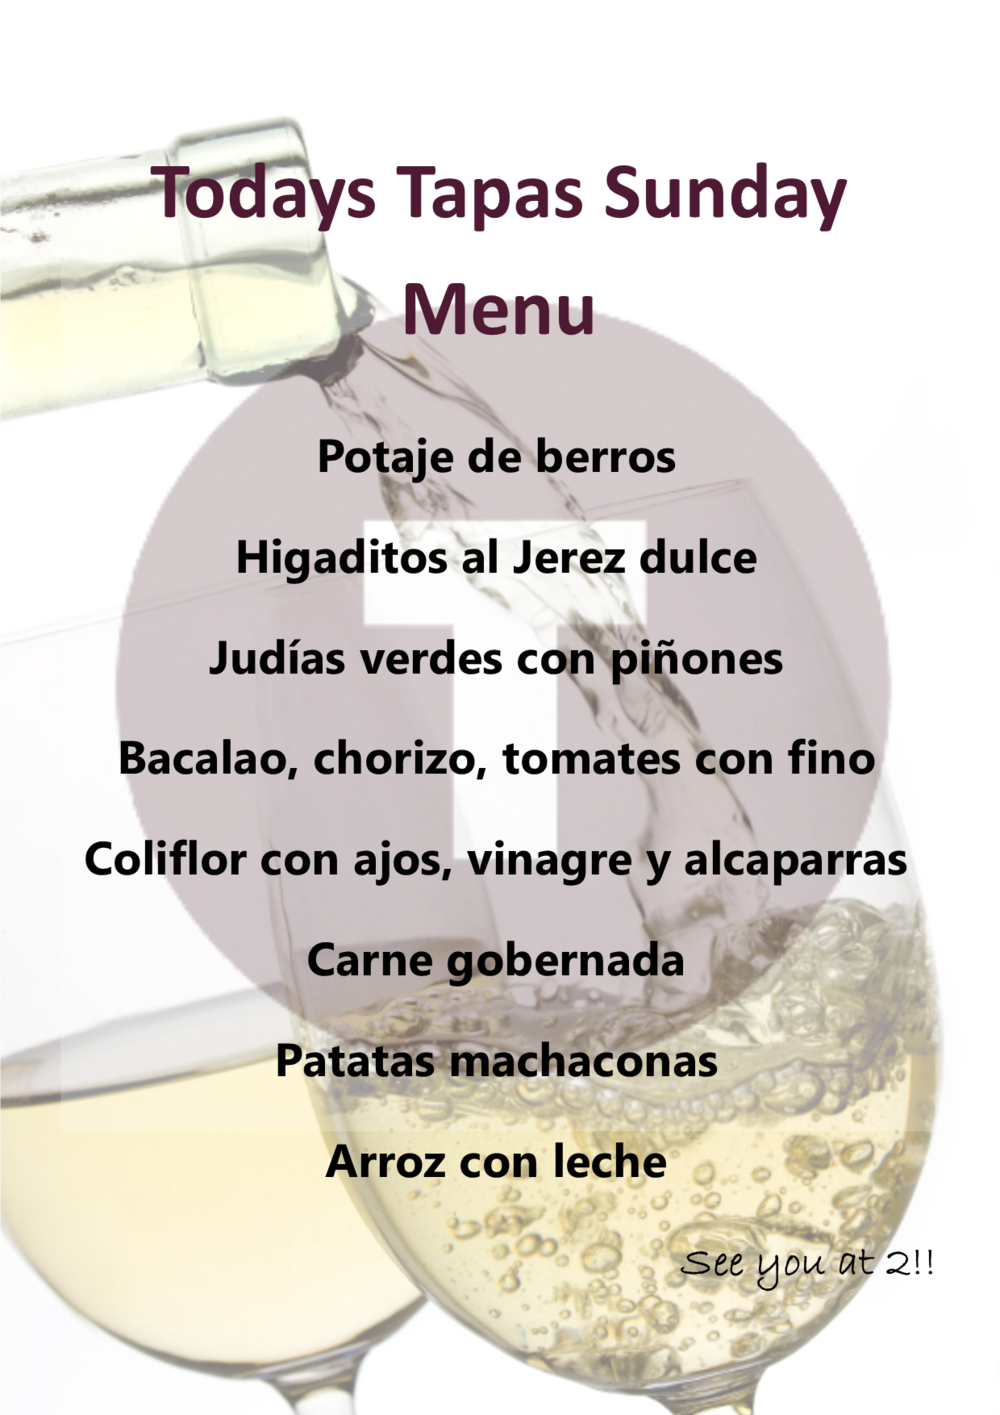 Sample Tapas Sunday Menu